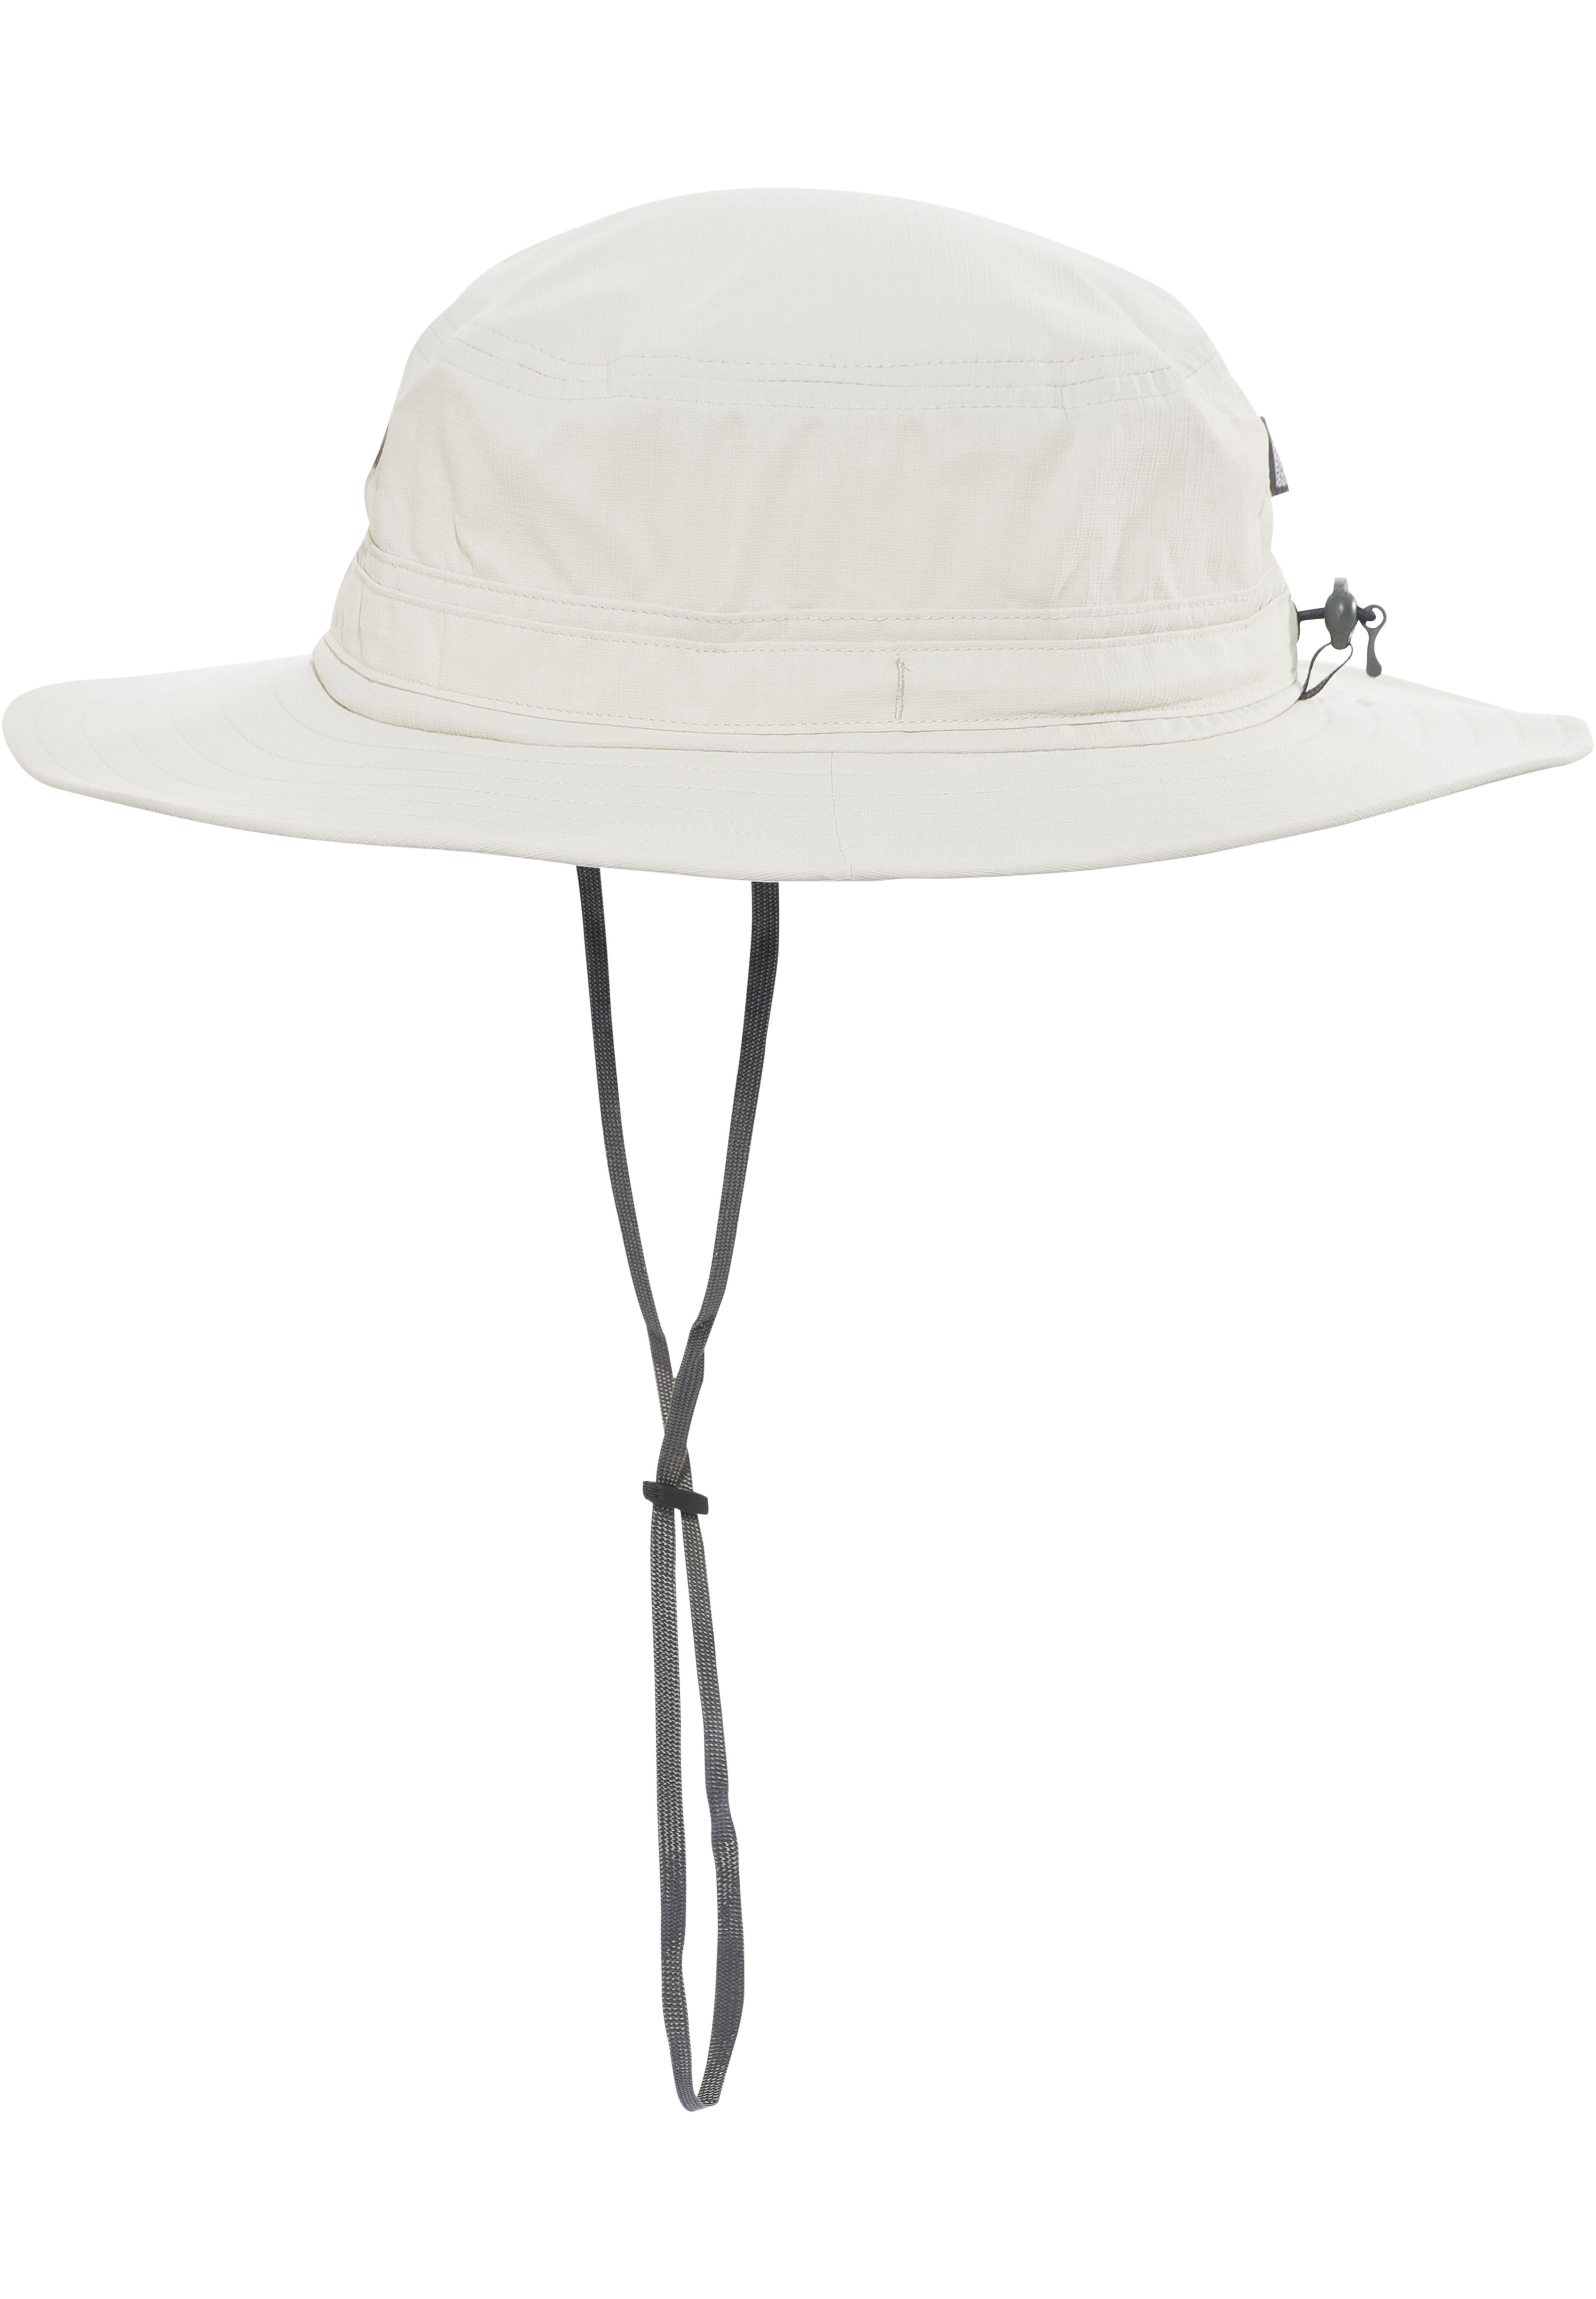 7fca4575d Outdoor Research Helios Sun Hat sand